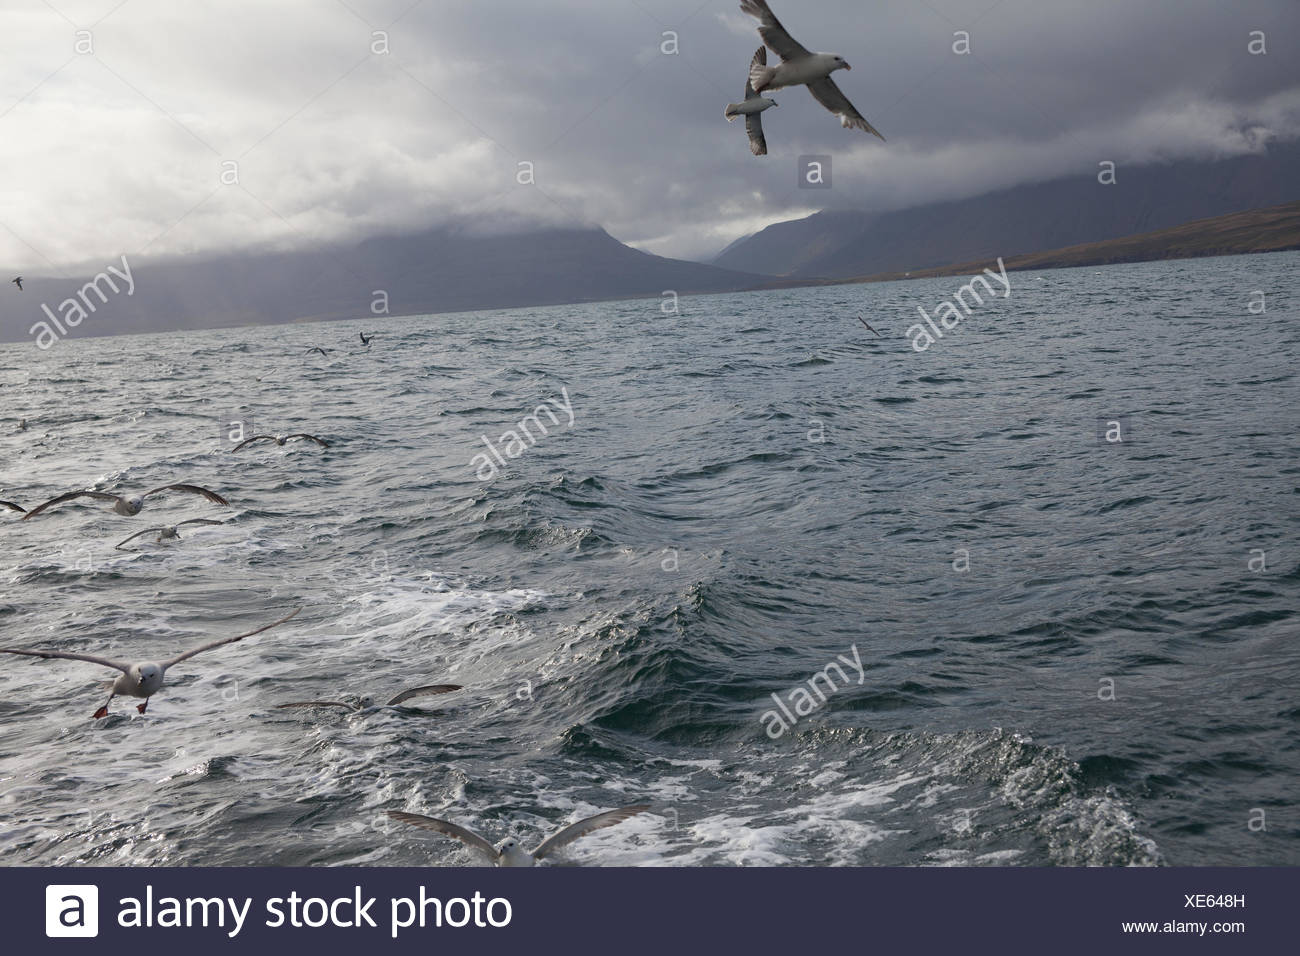 Seagulls Flying Over Sea Against Cloudy Sky Stock Photo